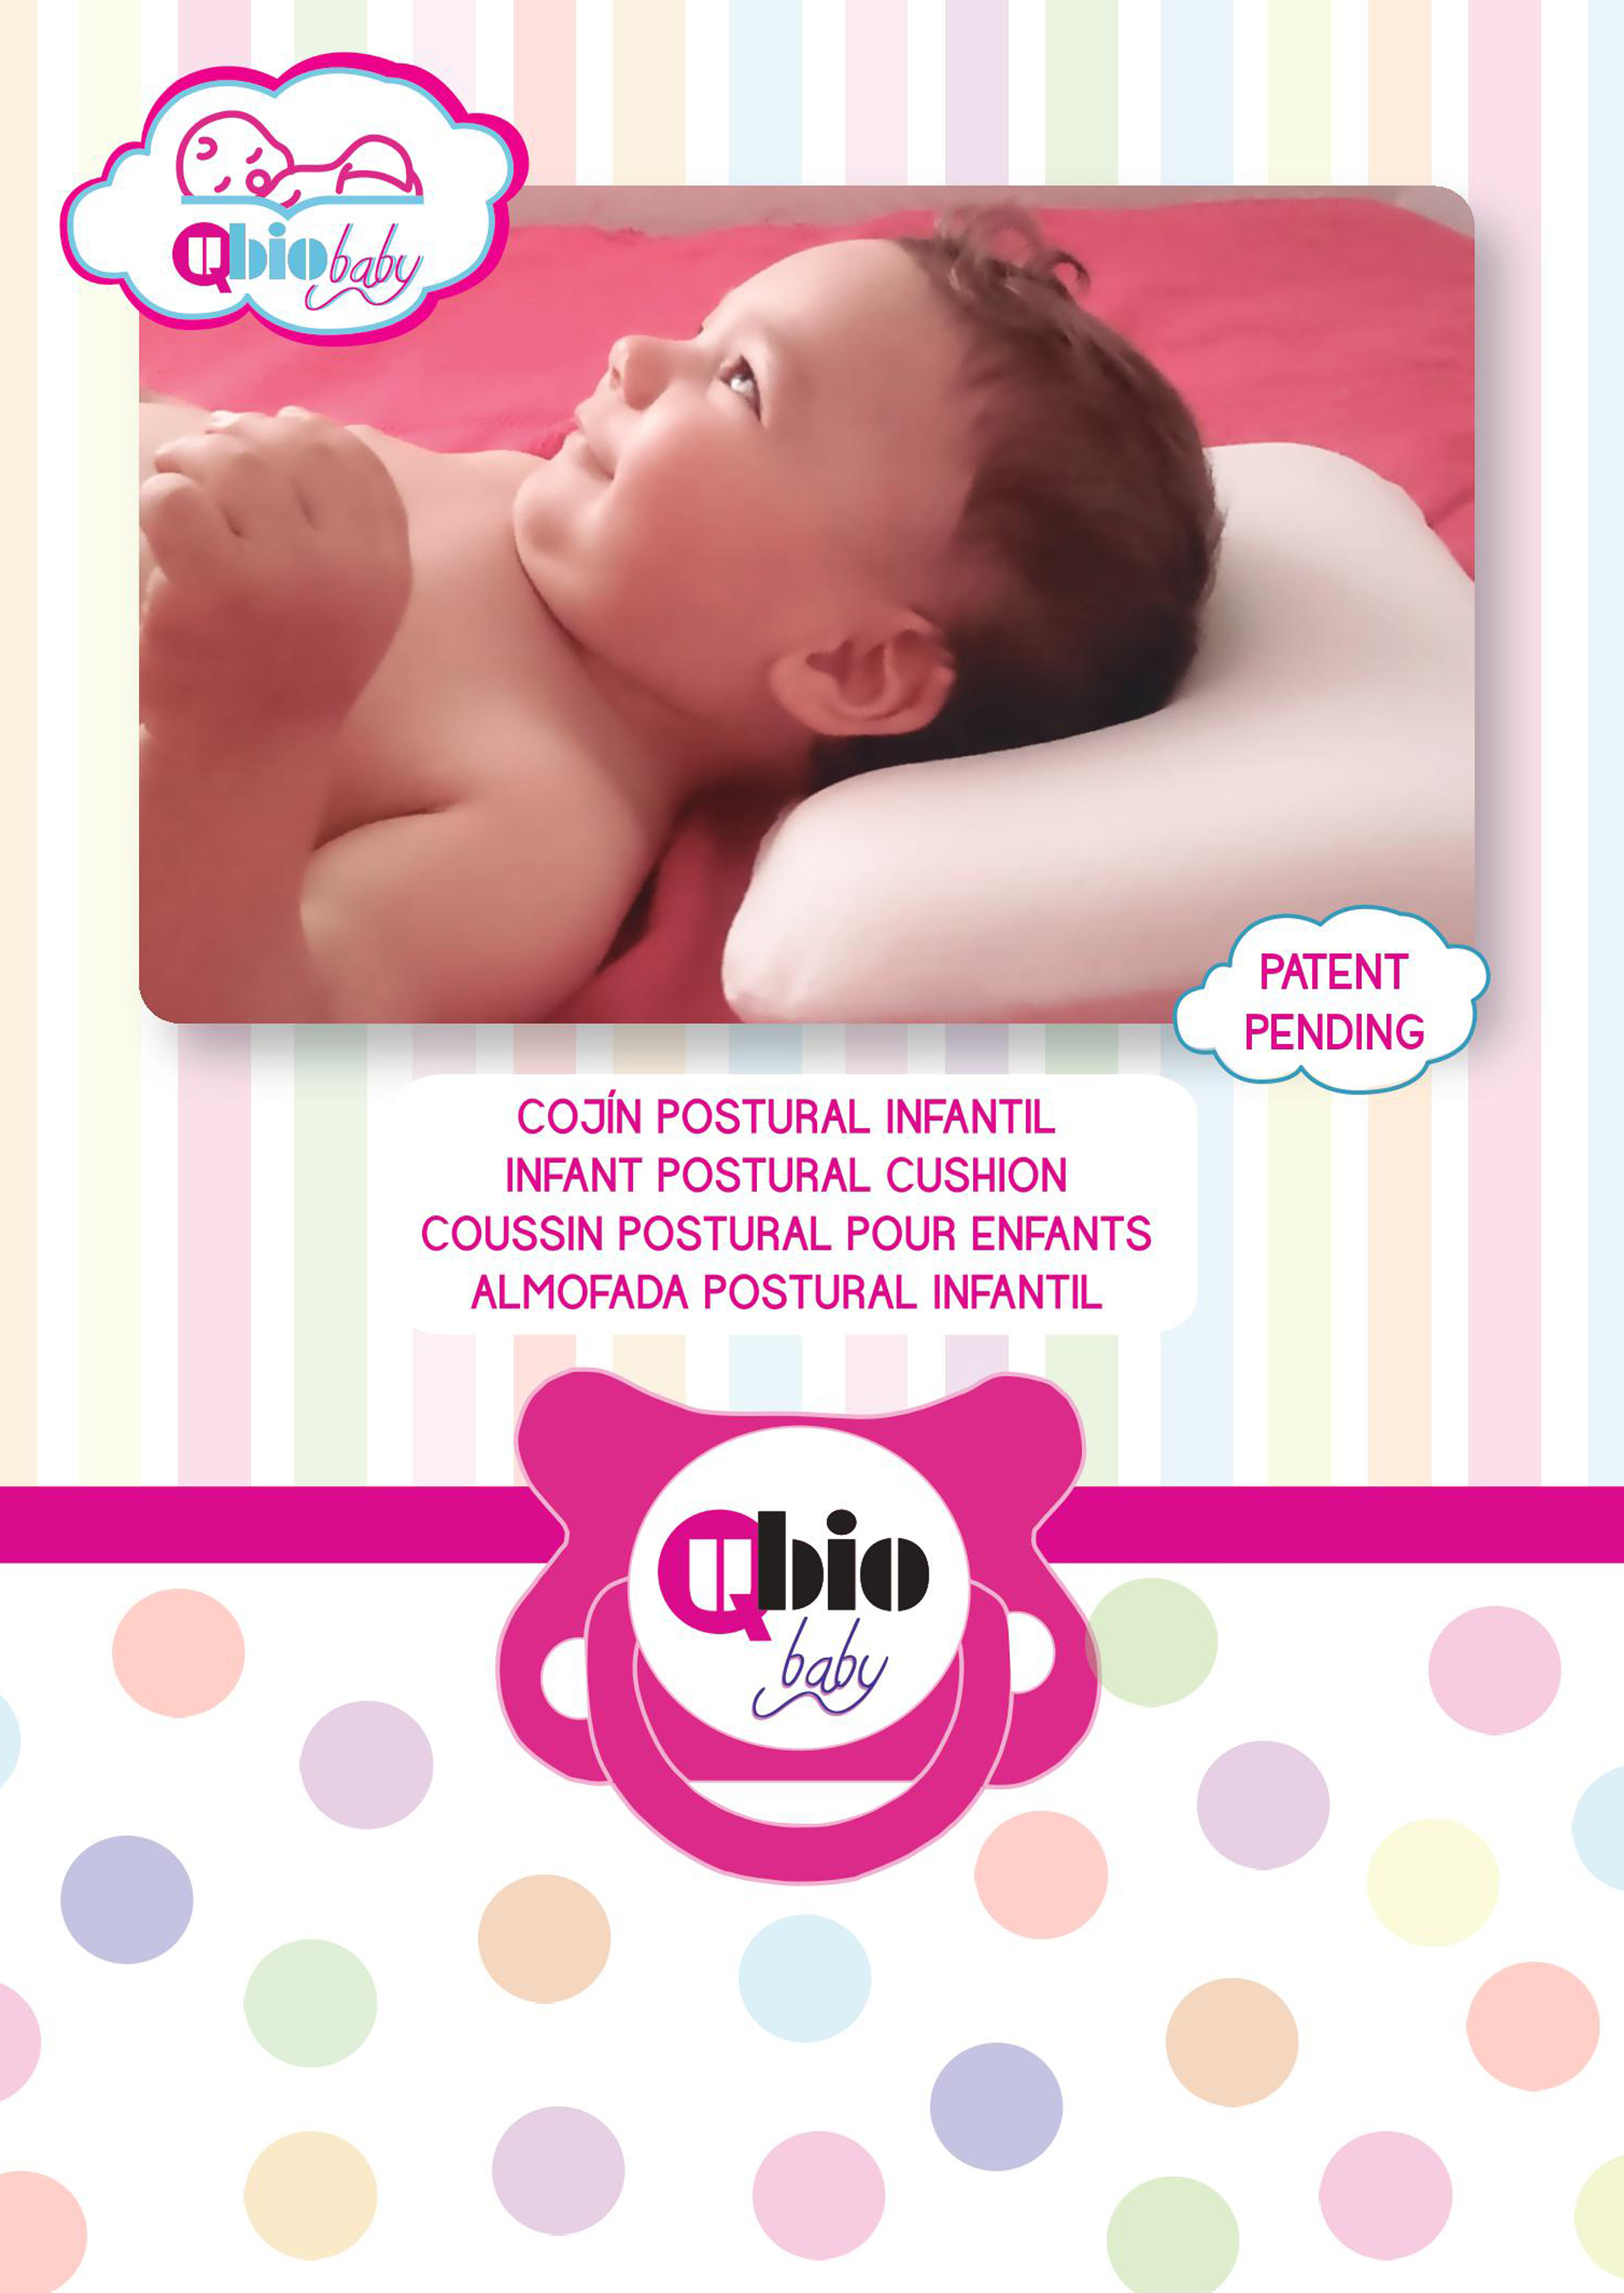 Ubiobaby Cushions Catalogue